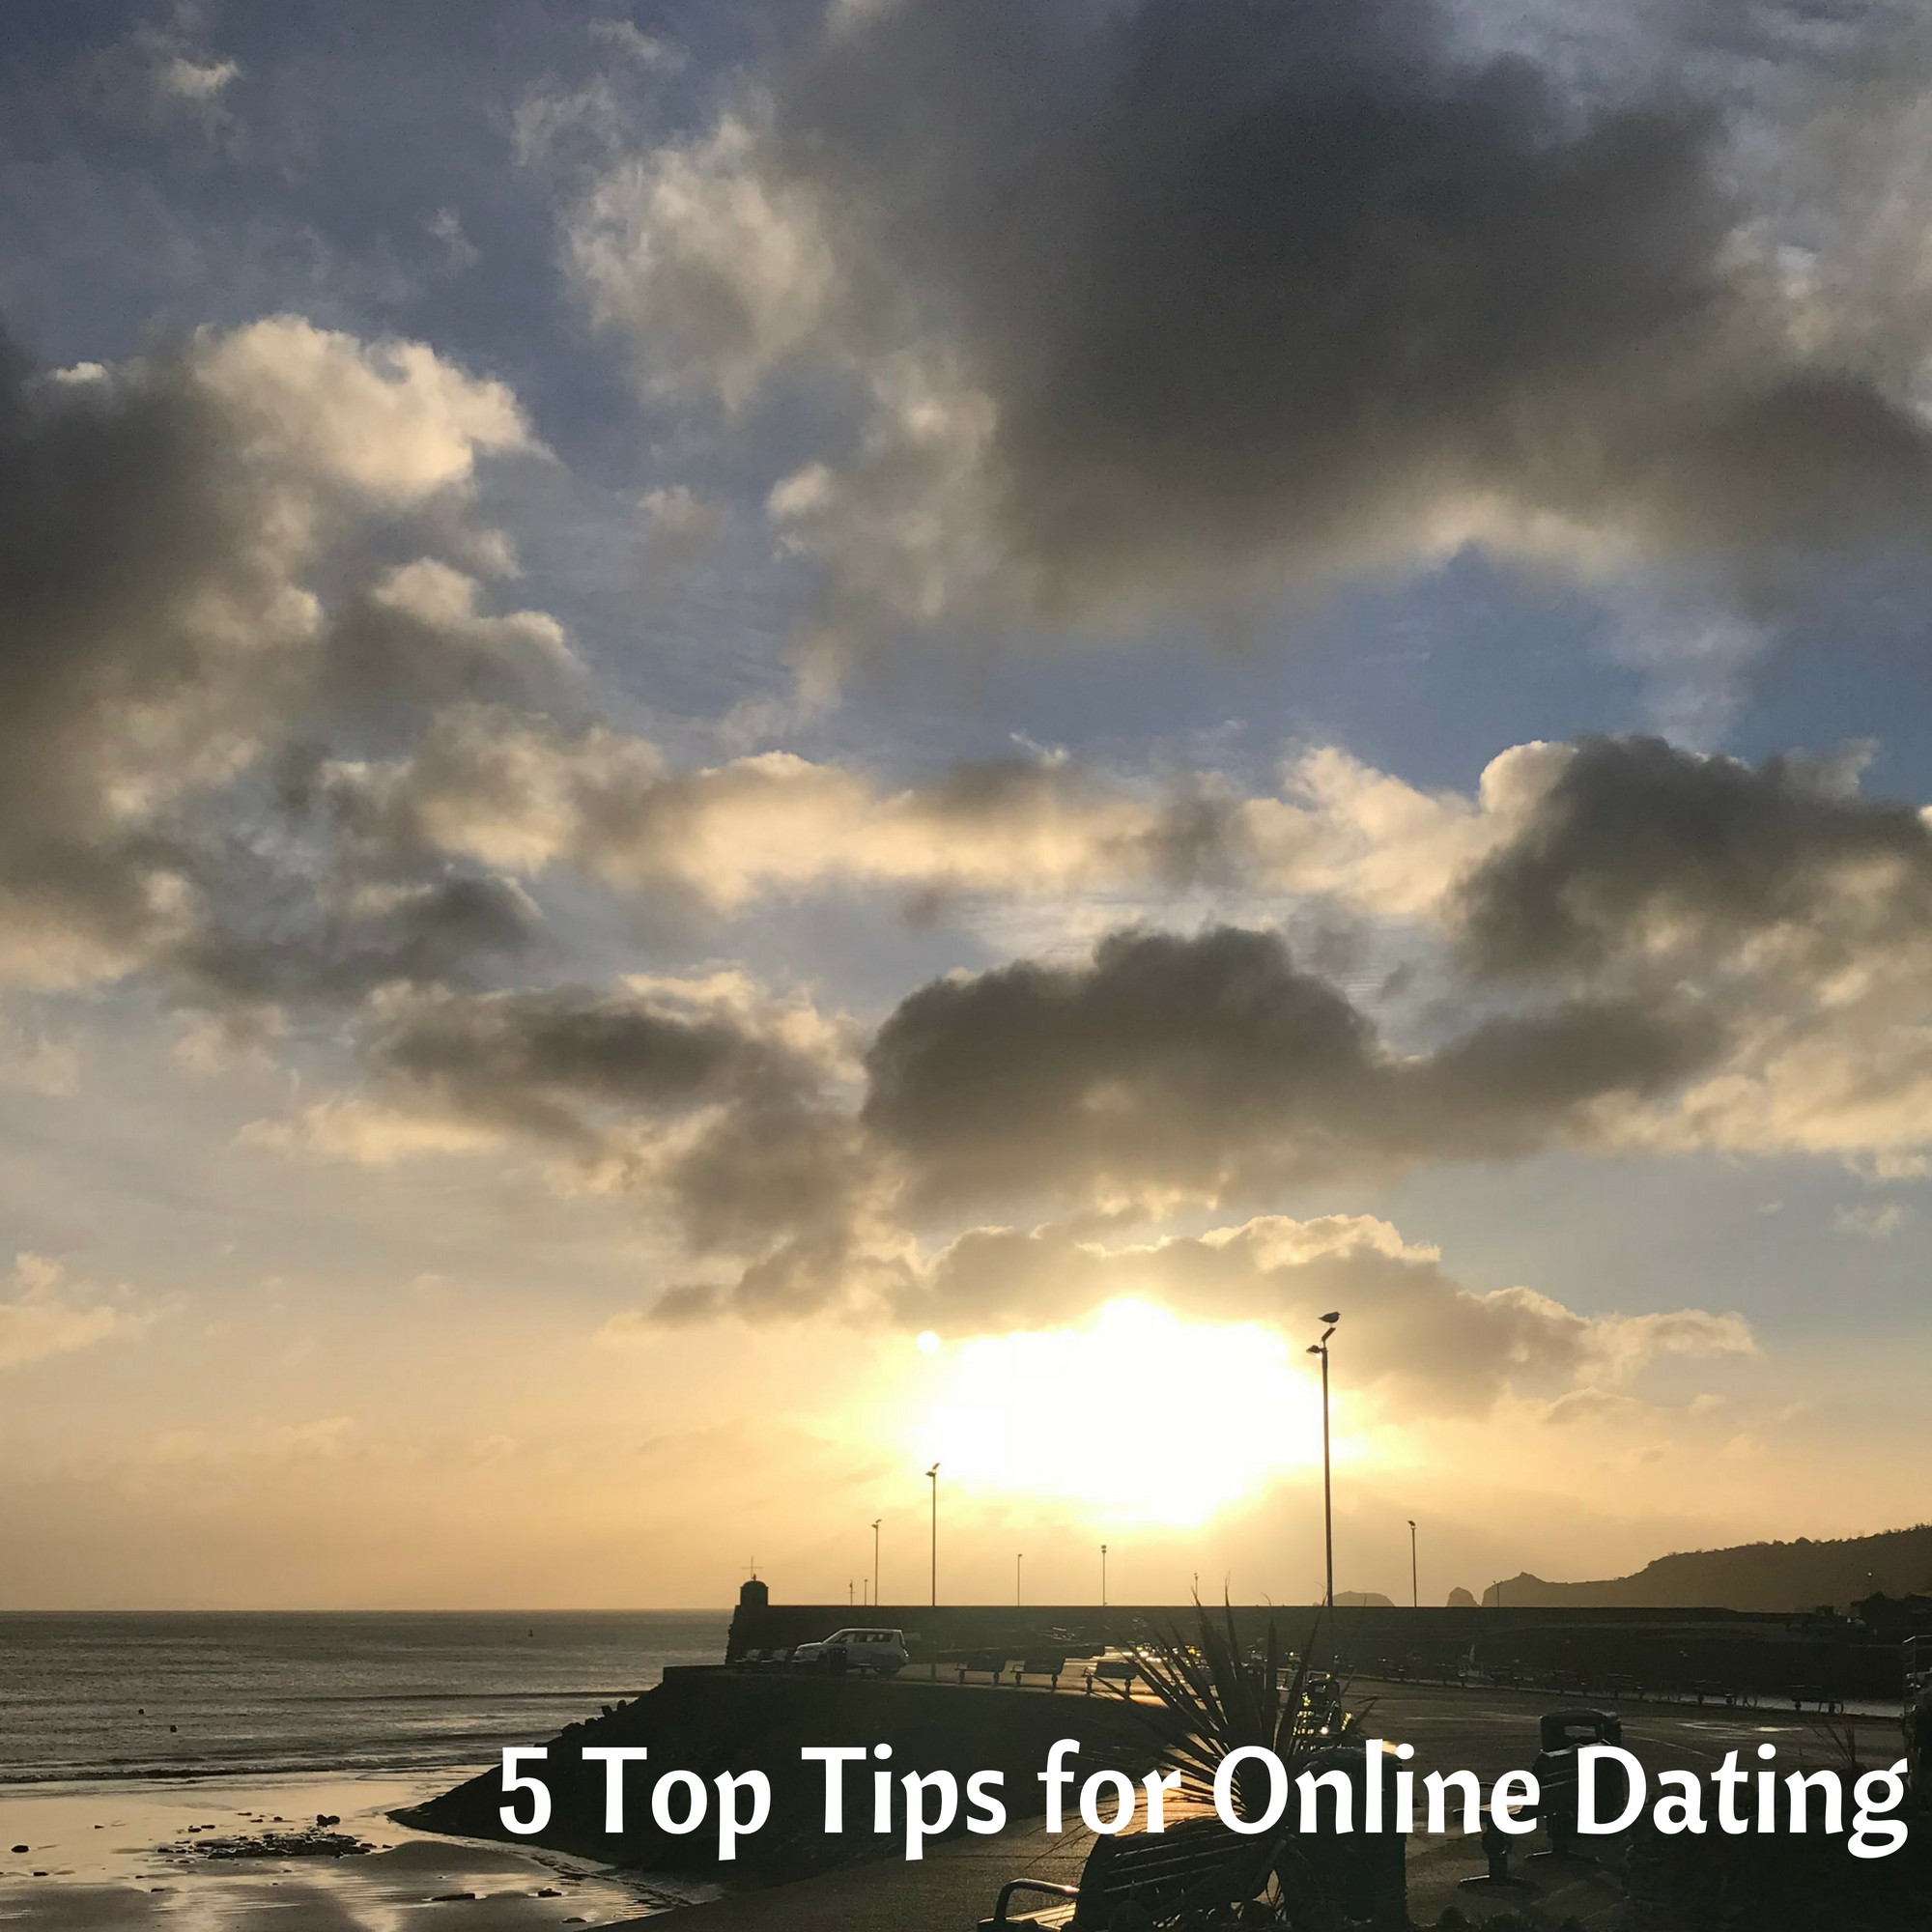 5 Top Tips for Online Dating